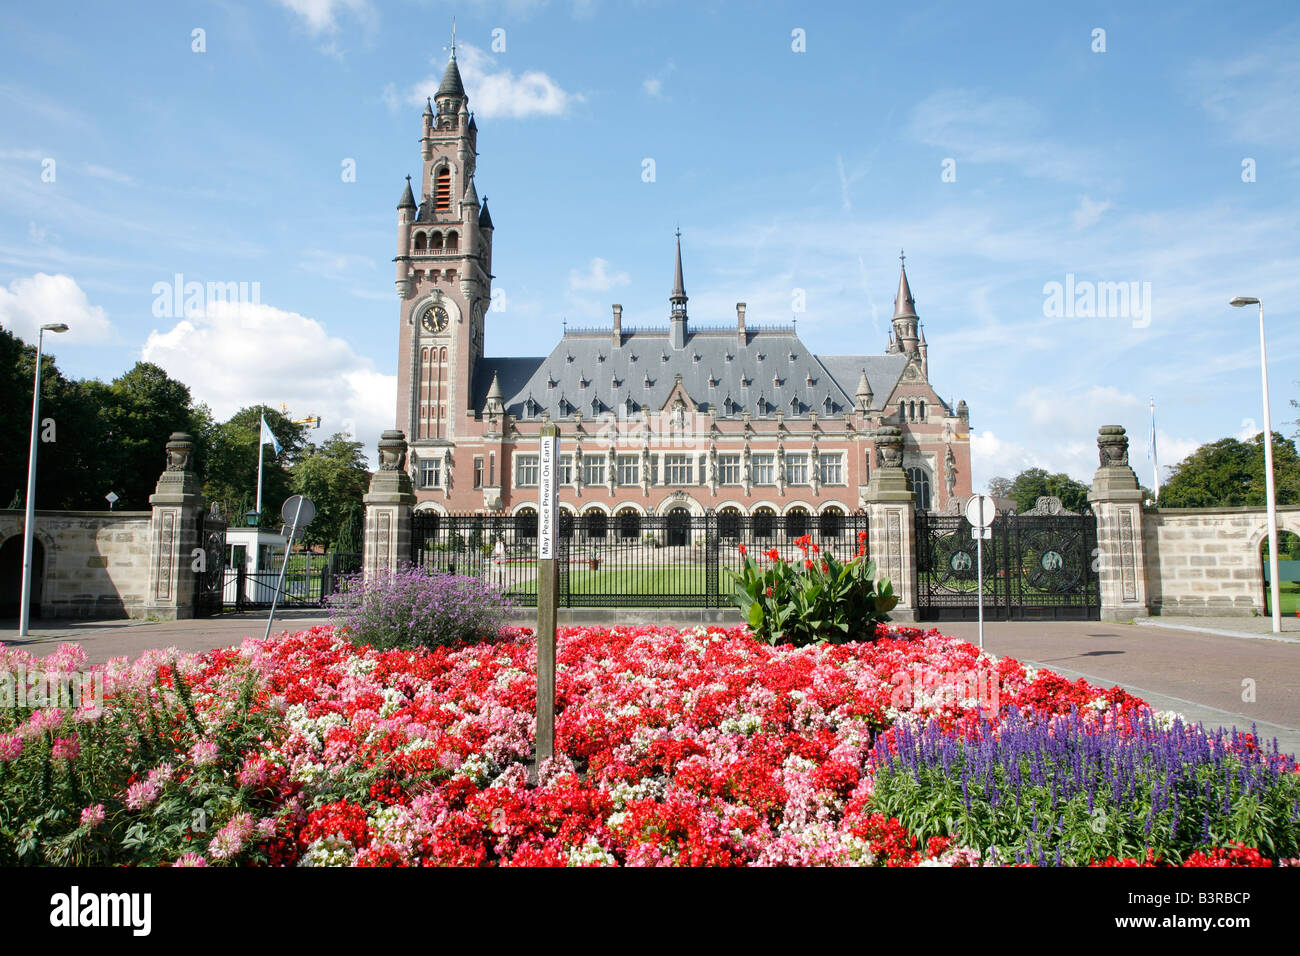 Image result for image of the peace palace